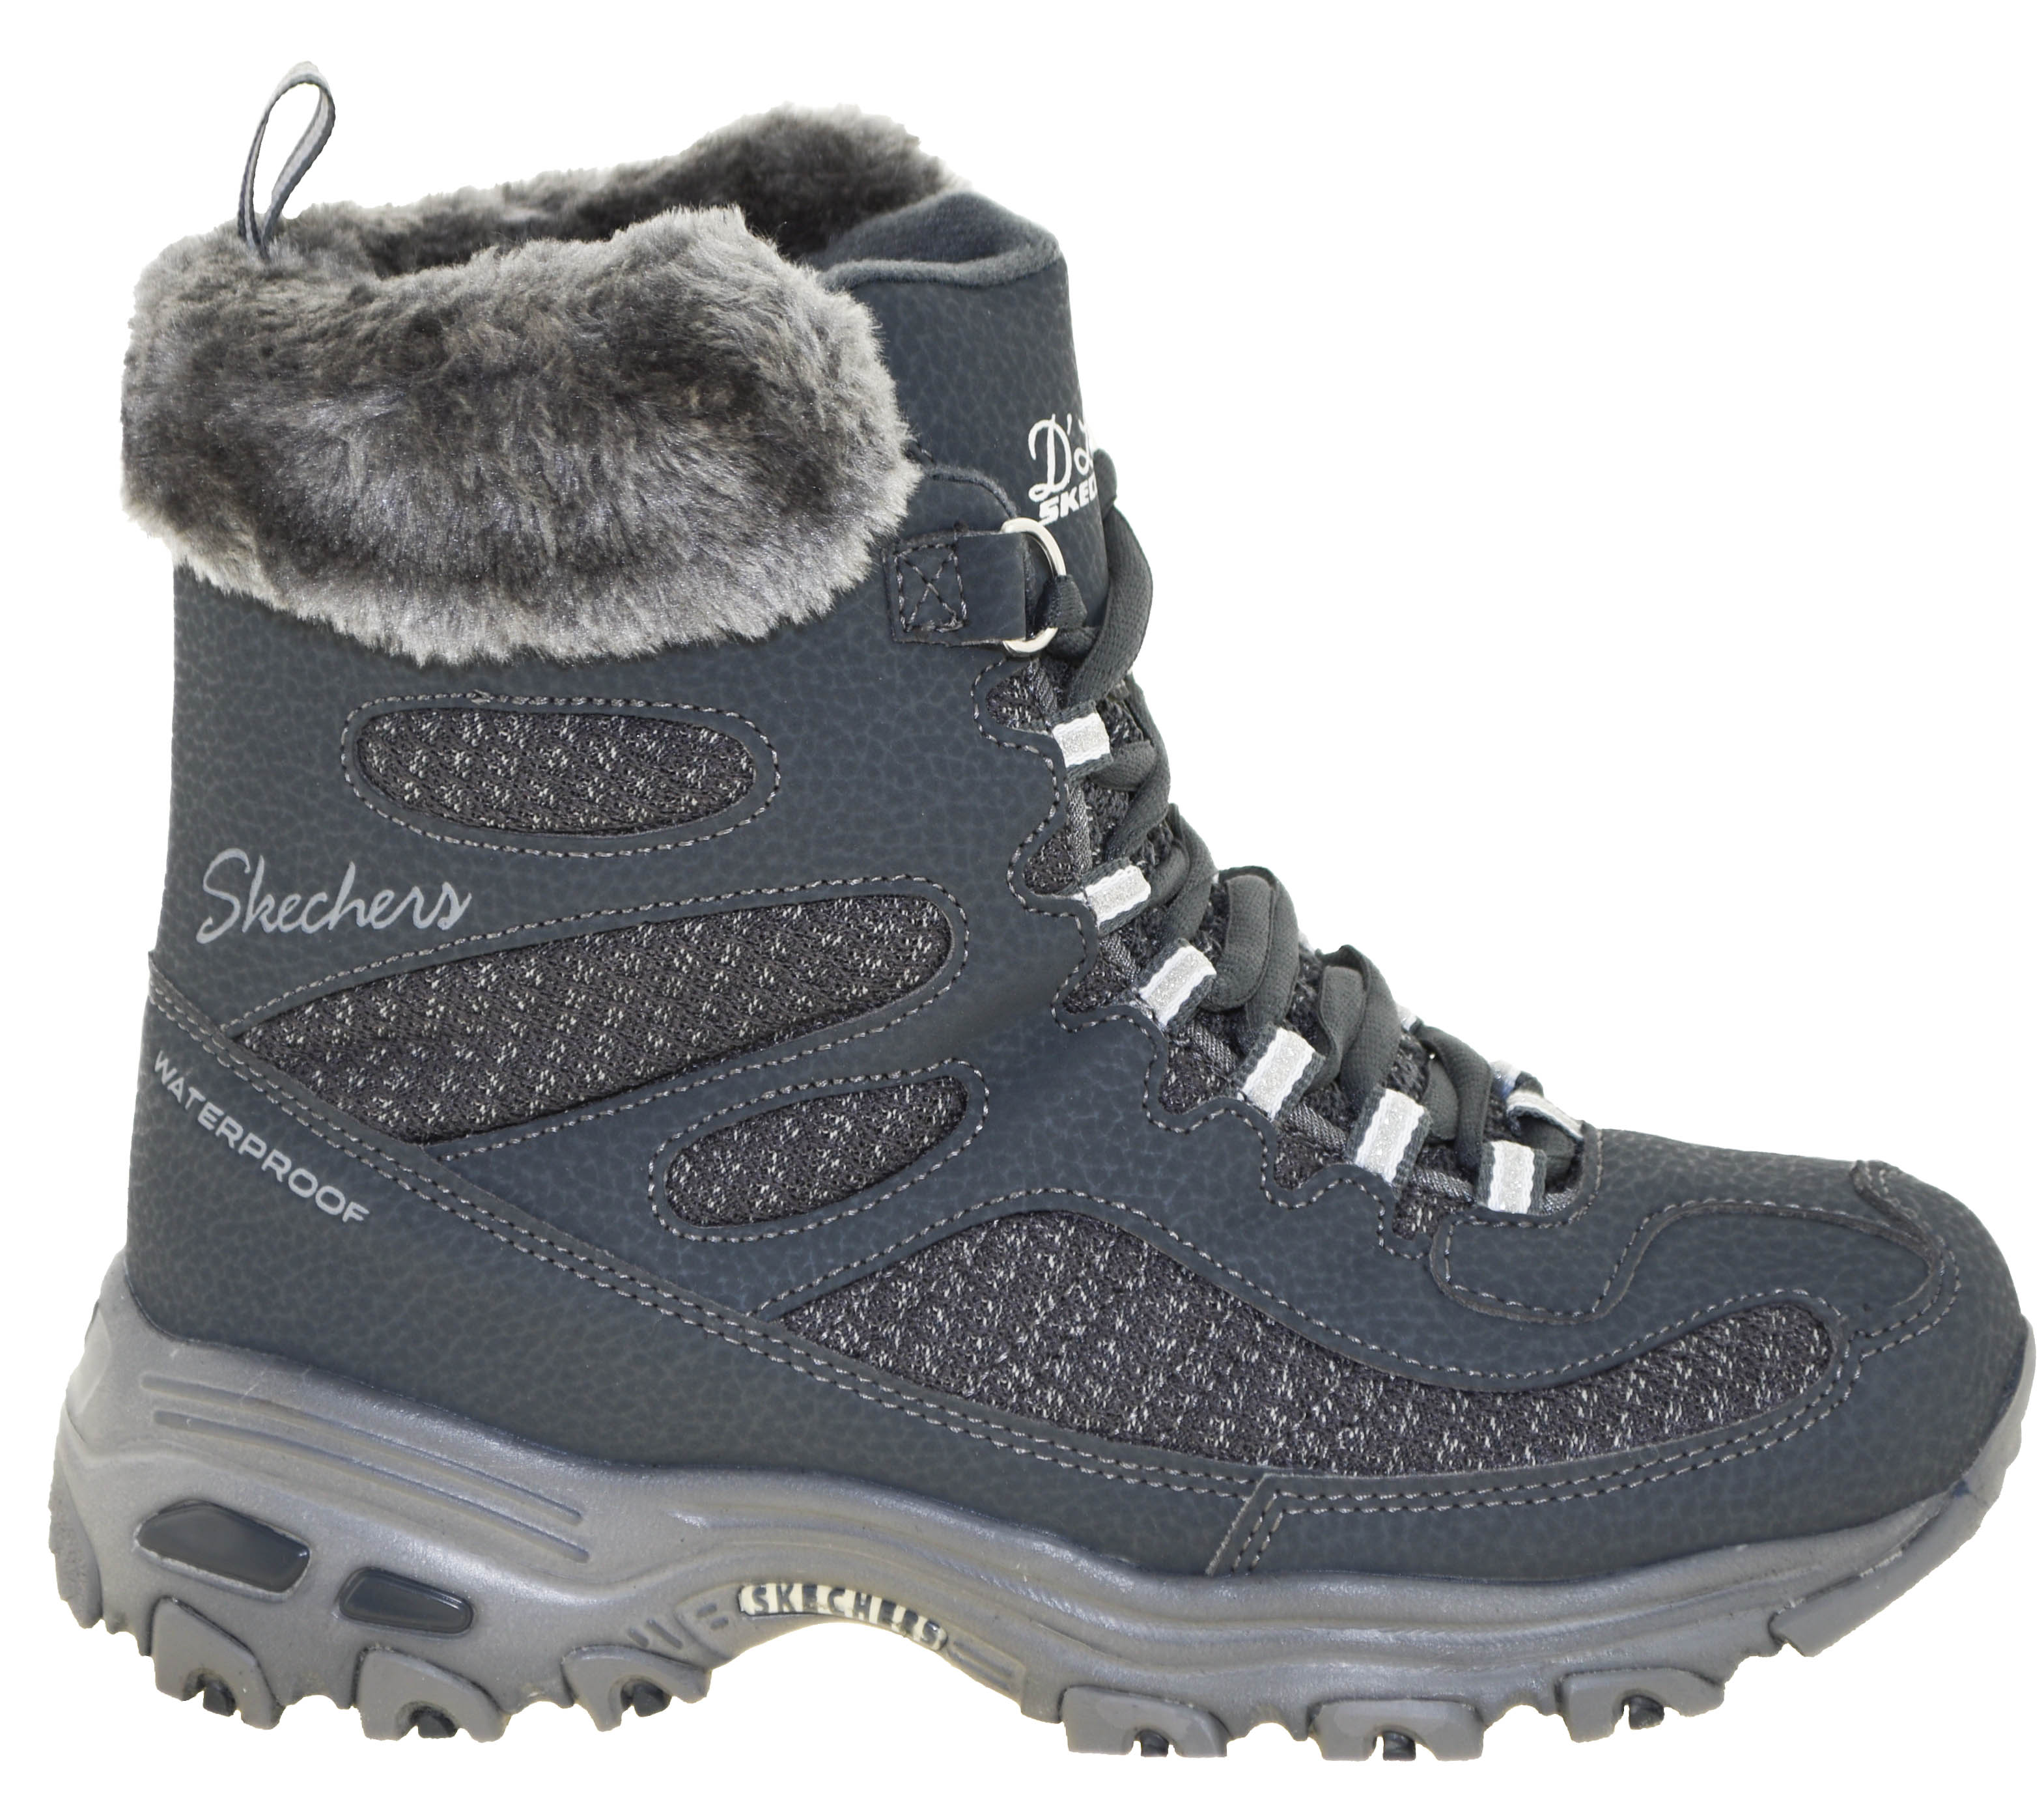 skechers womens winter boots